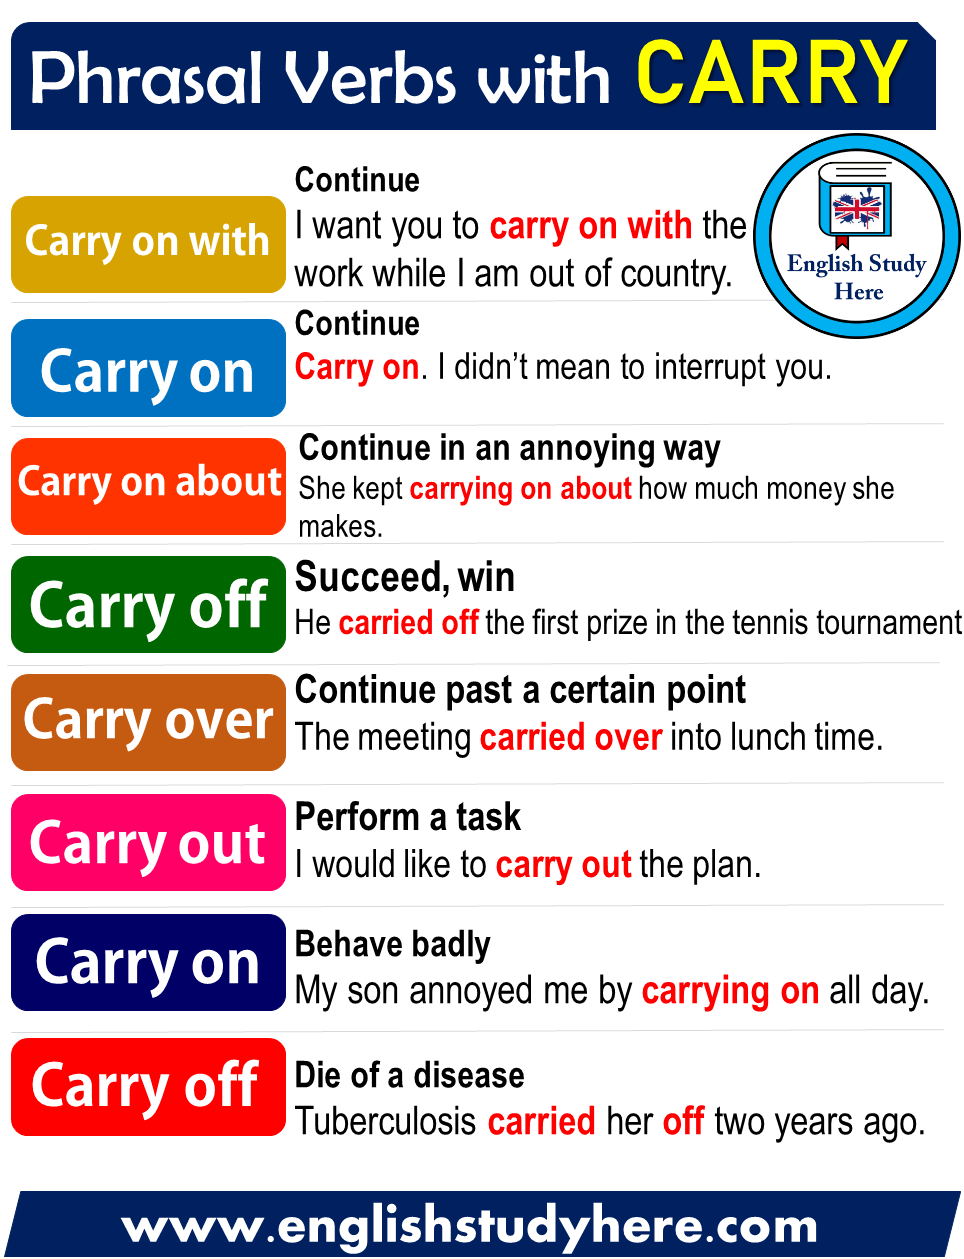 Phrasal Verbs with CARRY in English